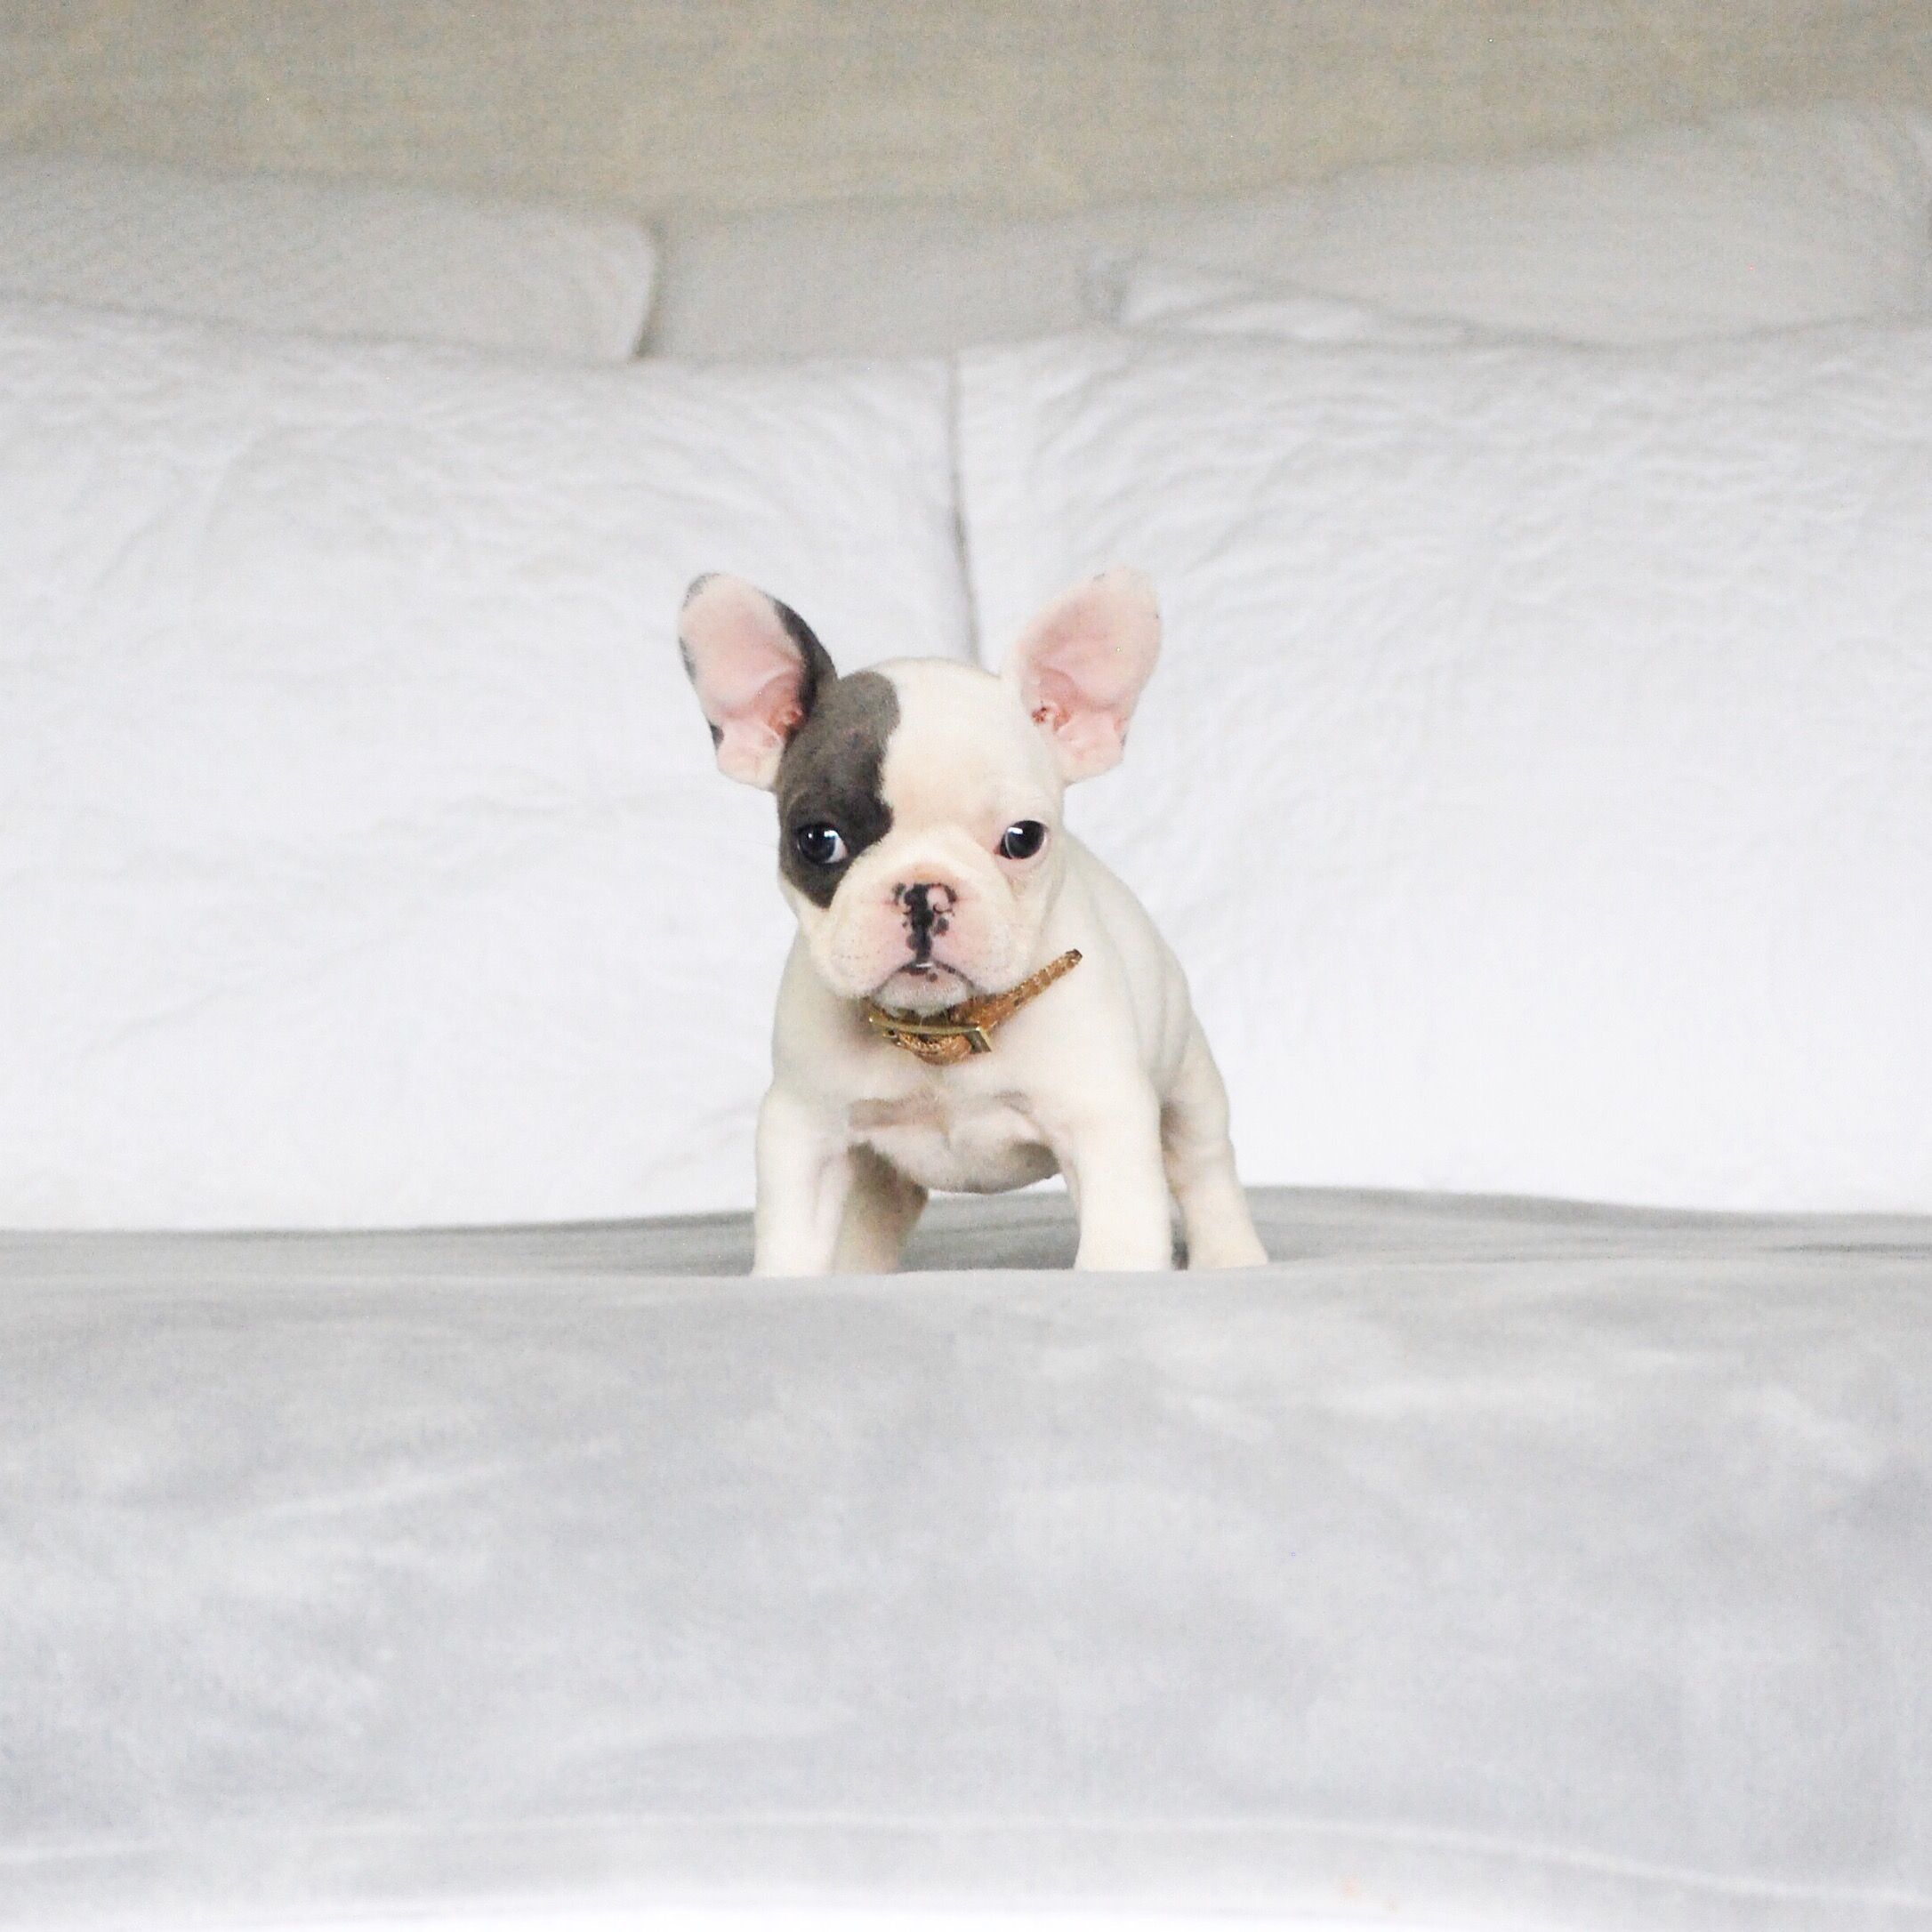 French Bulldog Puppy Blue Pied Frenchie Kittens And Puppies Cute Baby Puppies Cute Animals